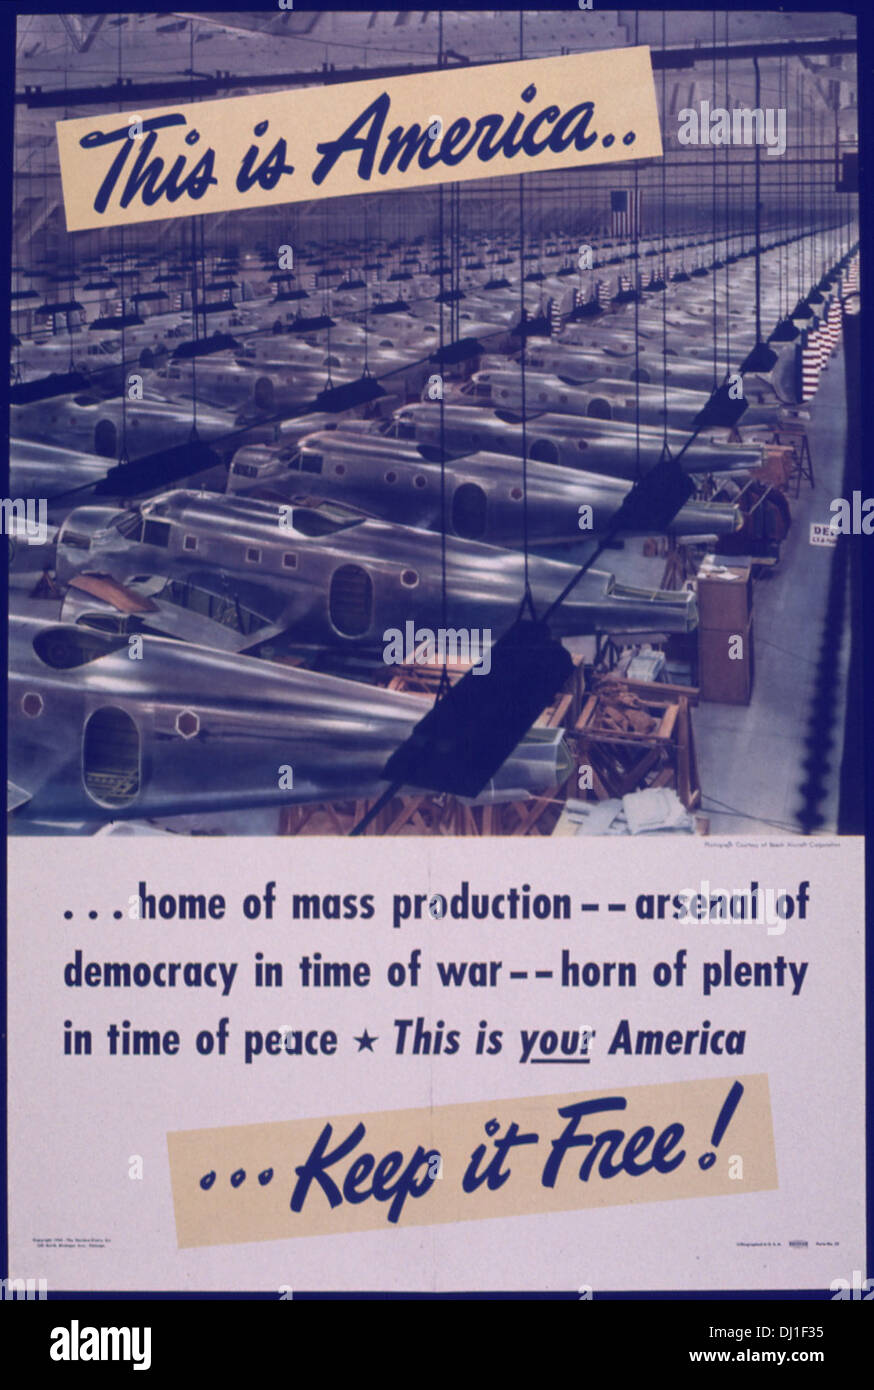 THIS IS AMERICA... HOME OF MASS PRODUCTION 737 - Stock Image